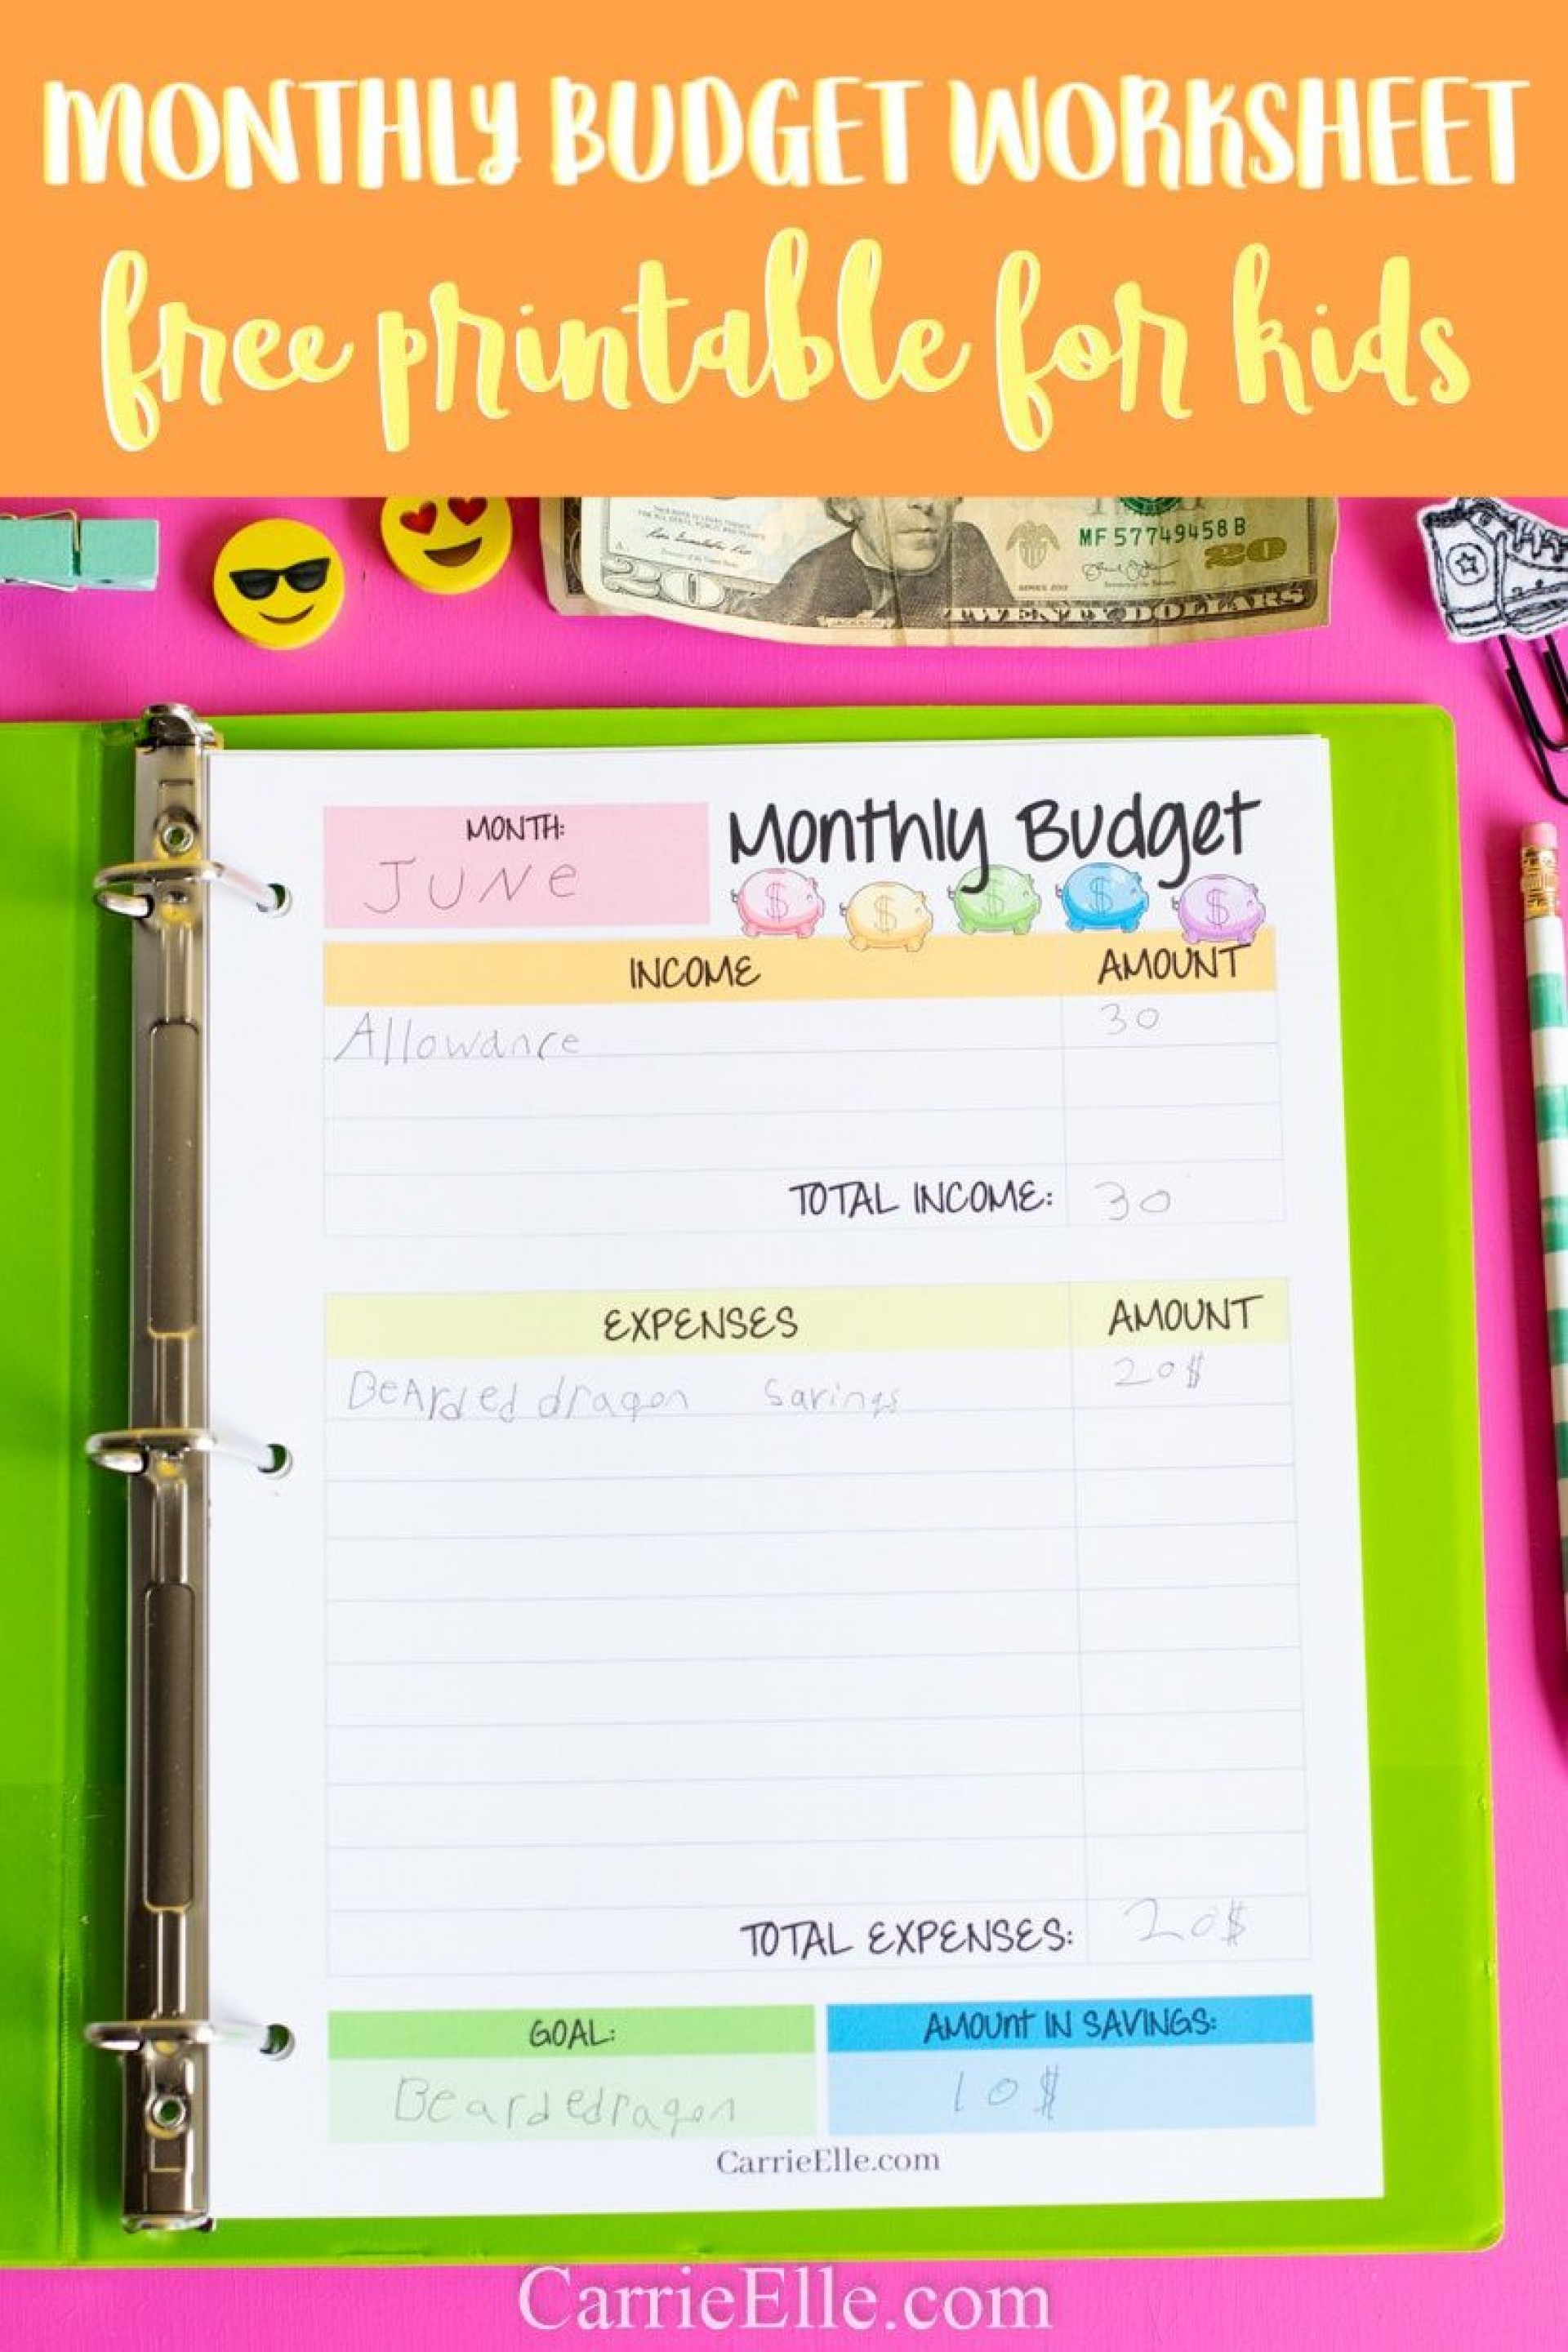 006 Outstanding Free Printable Monthly Budget Form Picture  Simple Template Blank Household Sheet1920